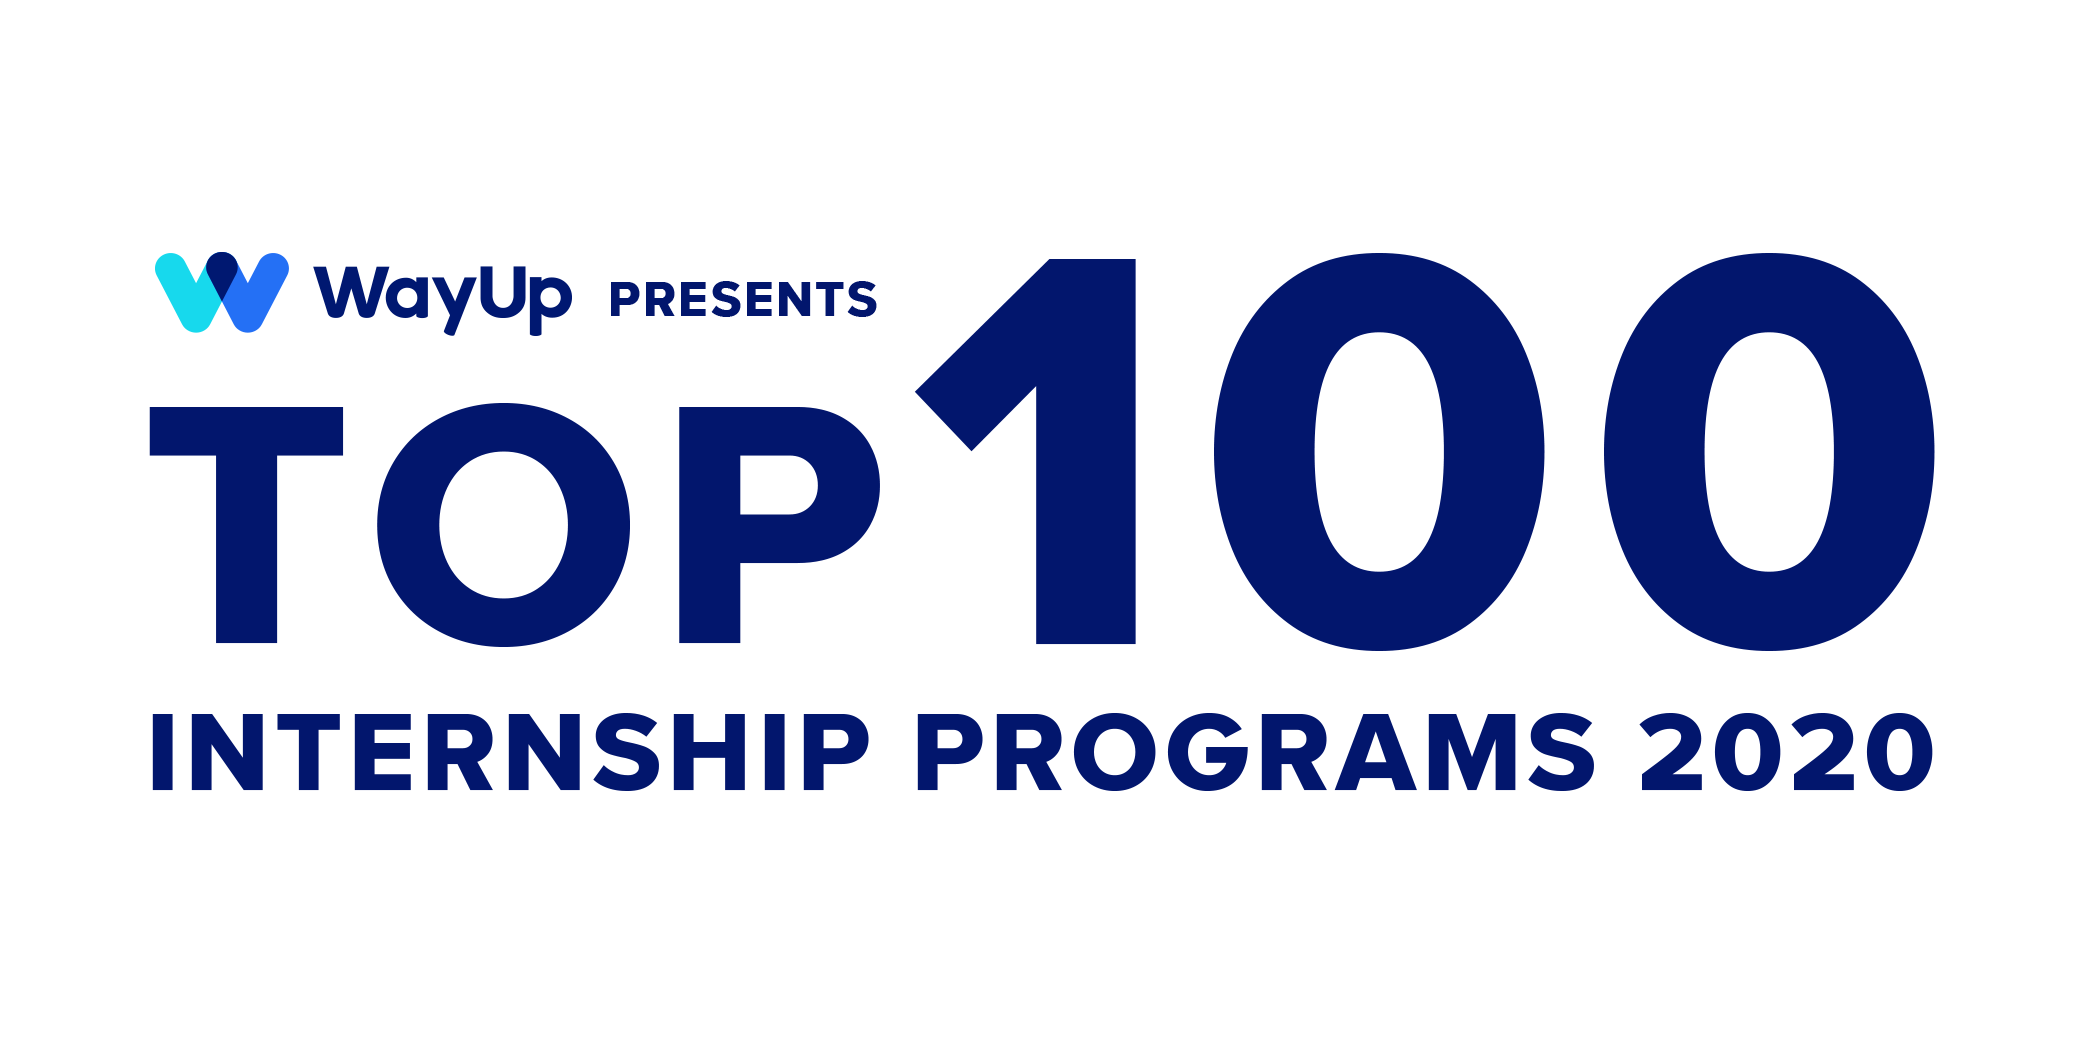 Wayup: Top 100 Internships Program - 2020